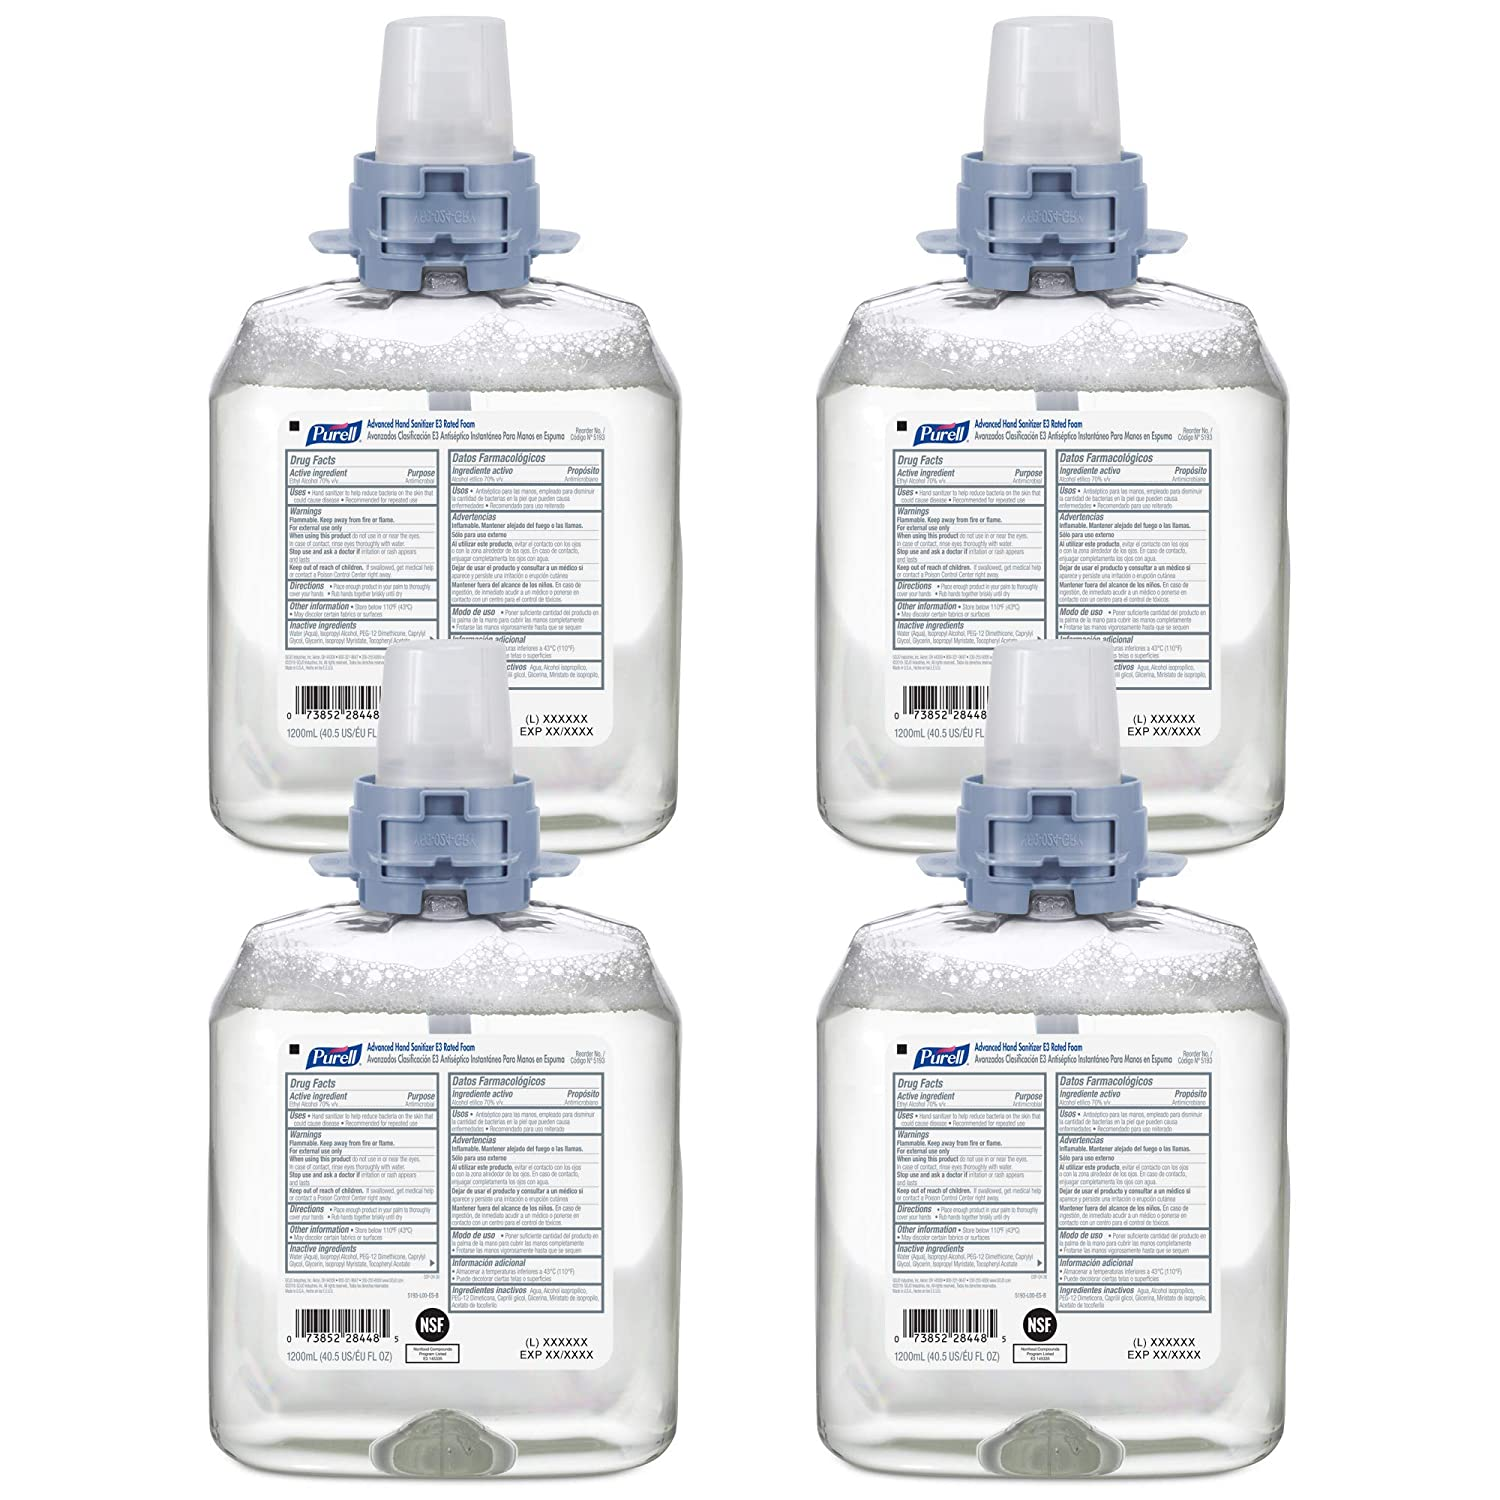 PURELL Advanced Hand Sanitizer E3 Rated Foam, Fragrance Free, 1200 mL Foam Hand Sanitizer Refill for PURELL FMX-12 Push-Style Dispenser (Pack of 4) – 5193-04